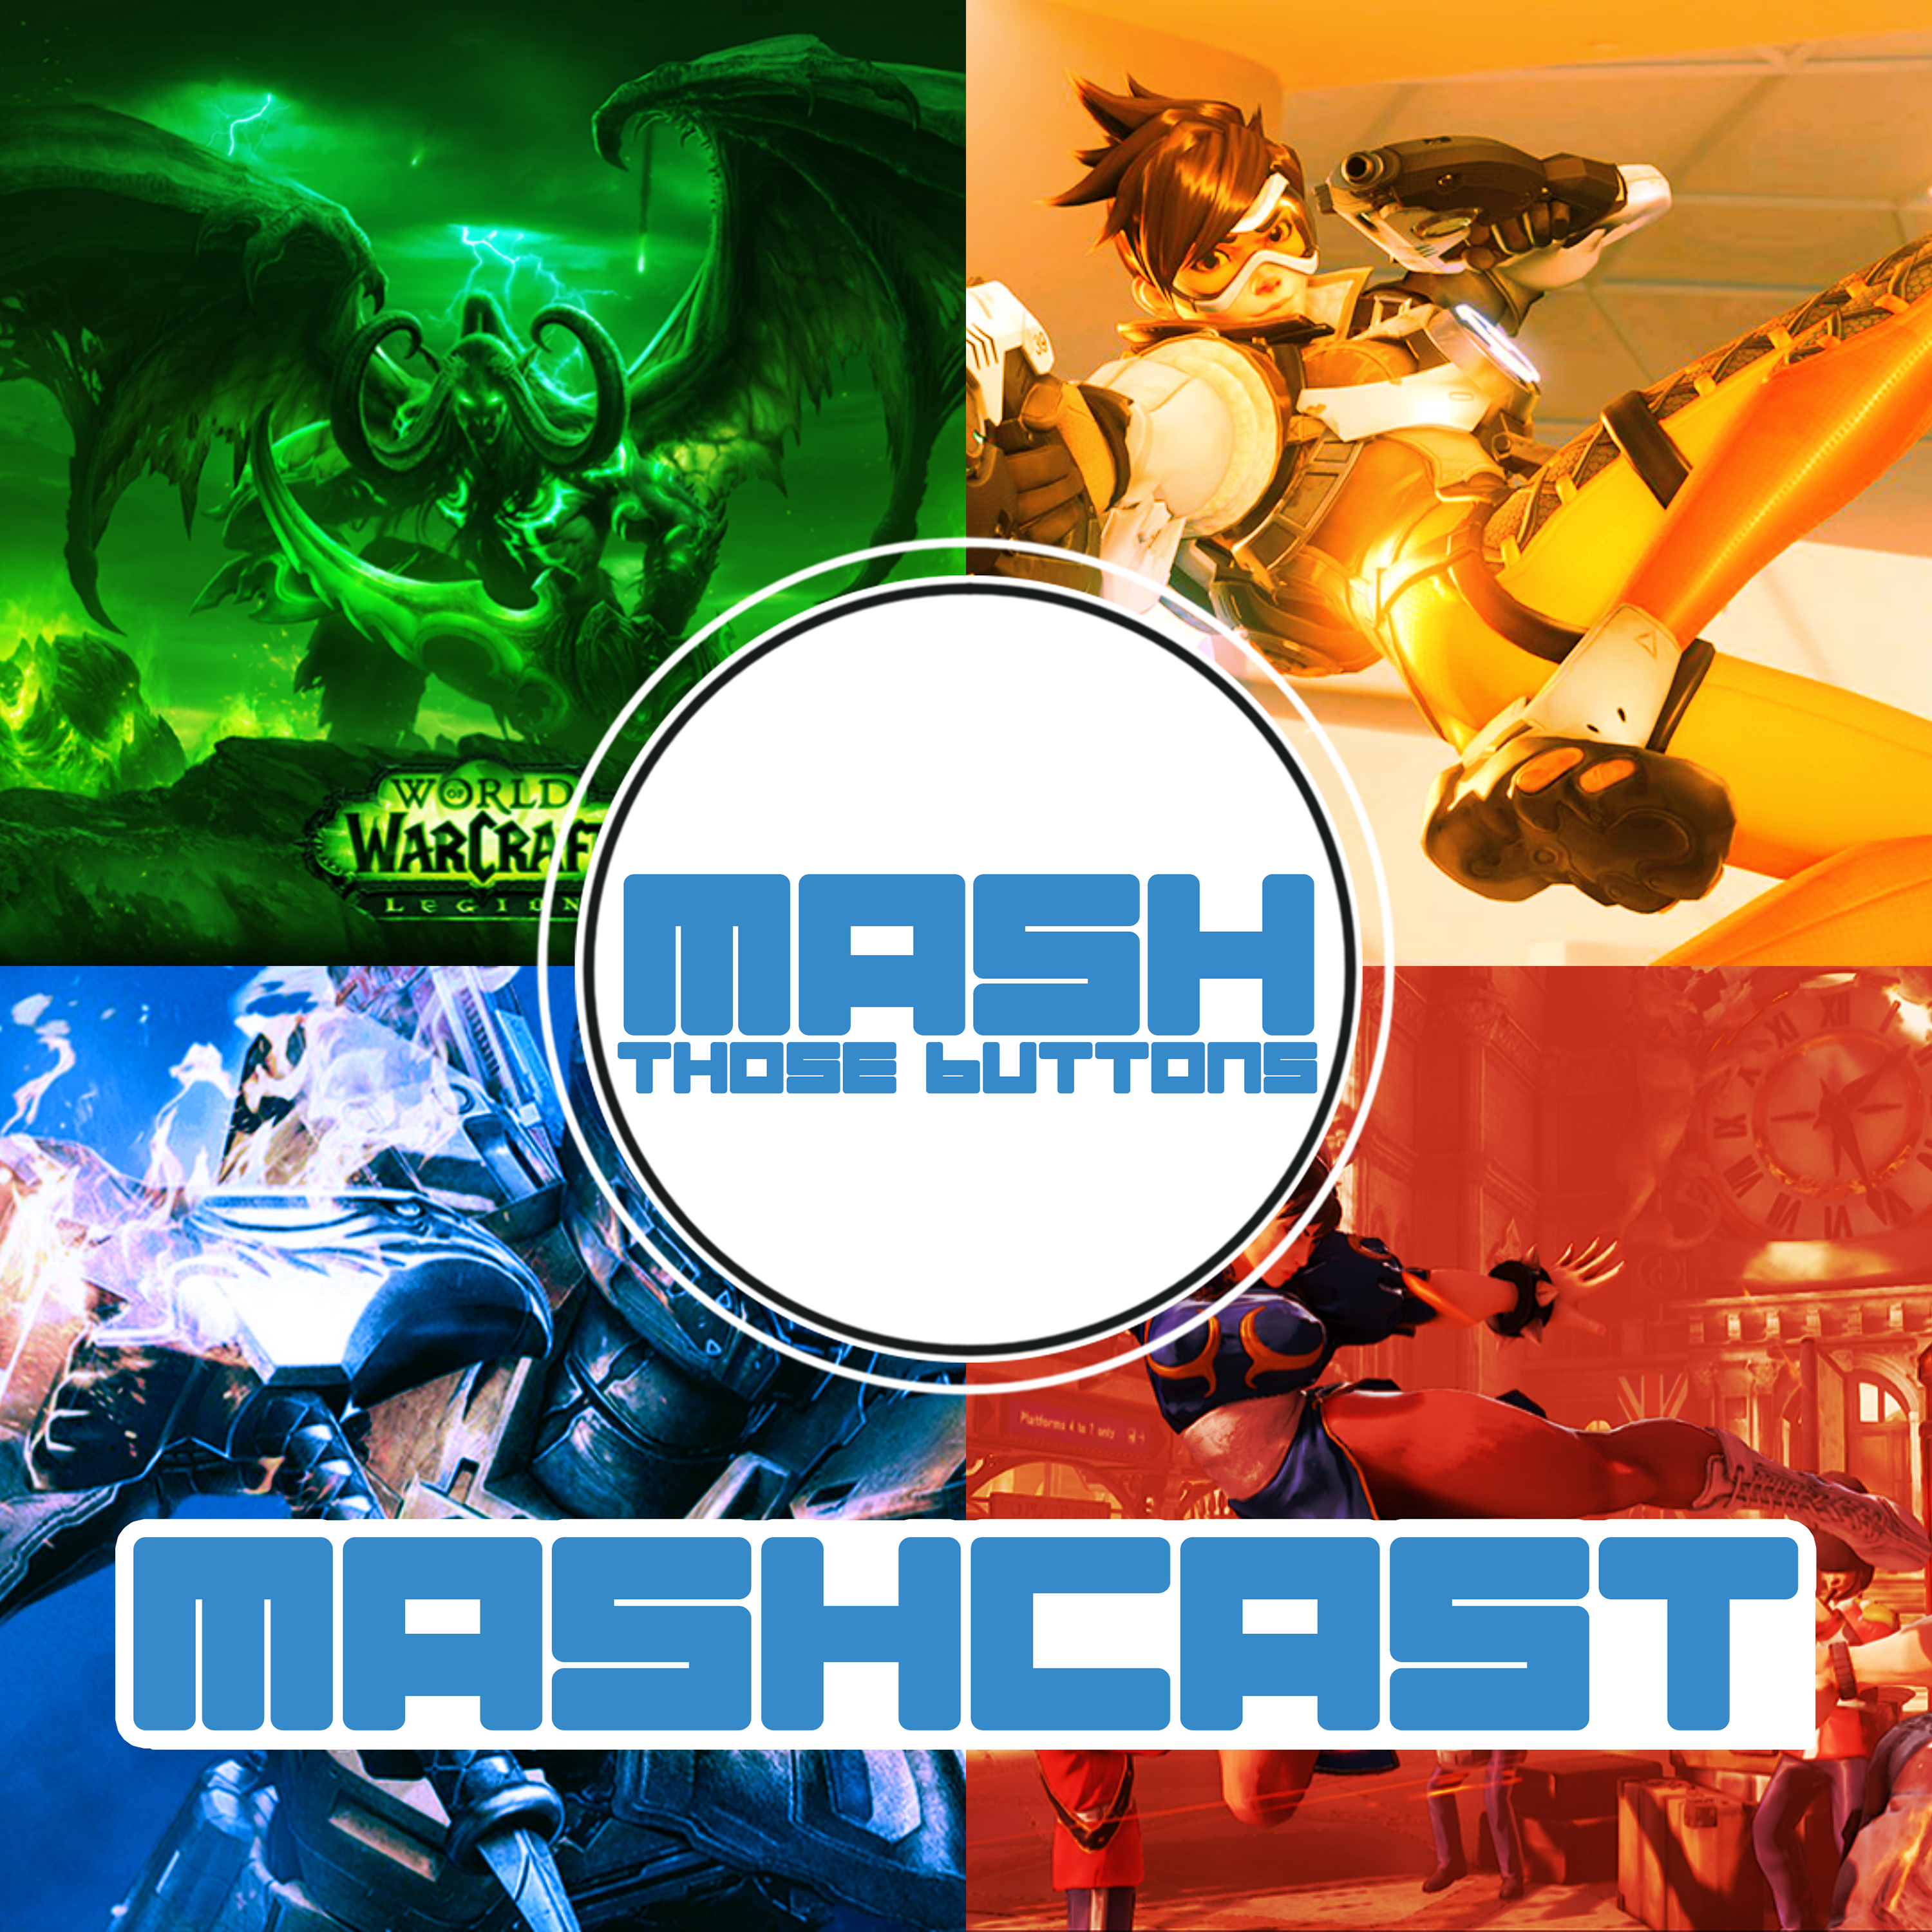 The Mashcast: Gaming Community, Culture, and Industry